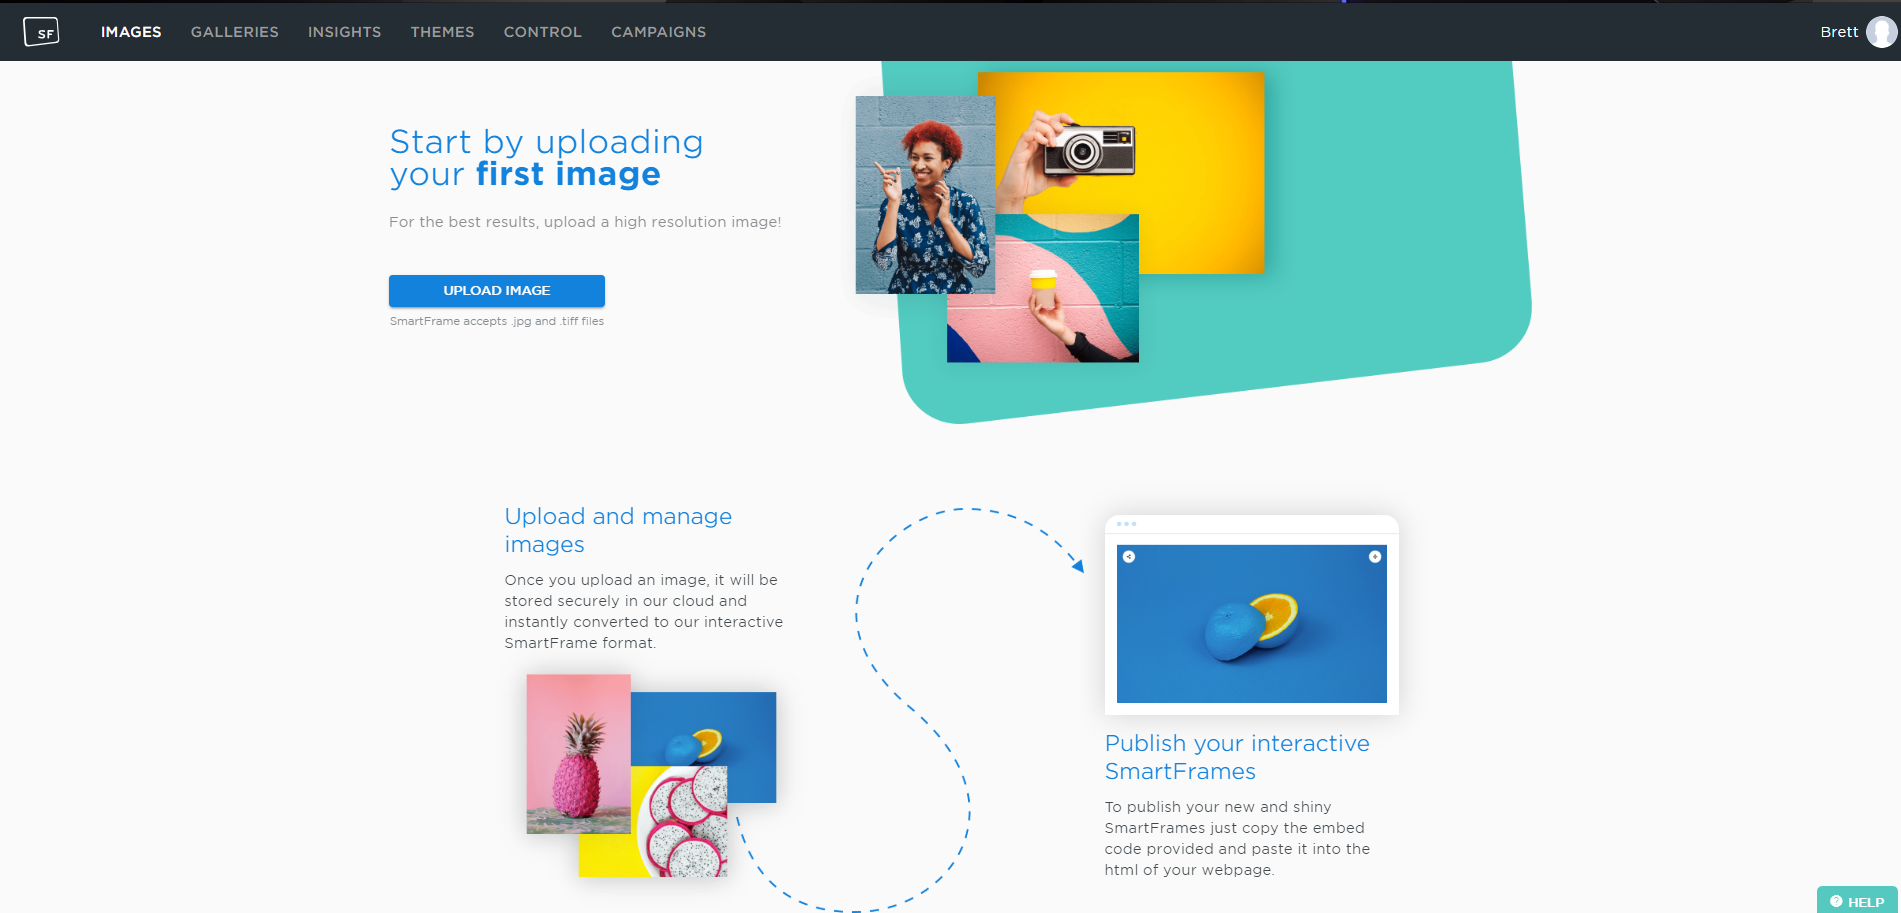 Review: Smartframe (A More Secure Way to Share Your Images)